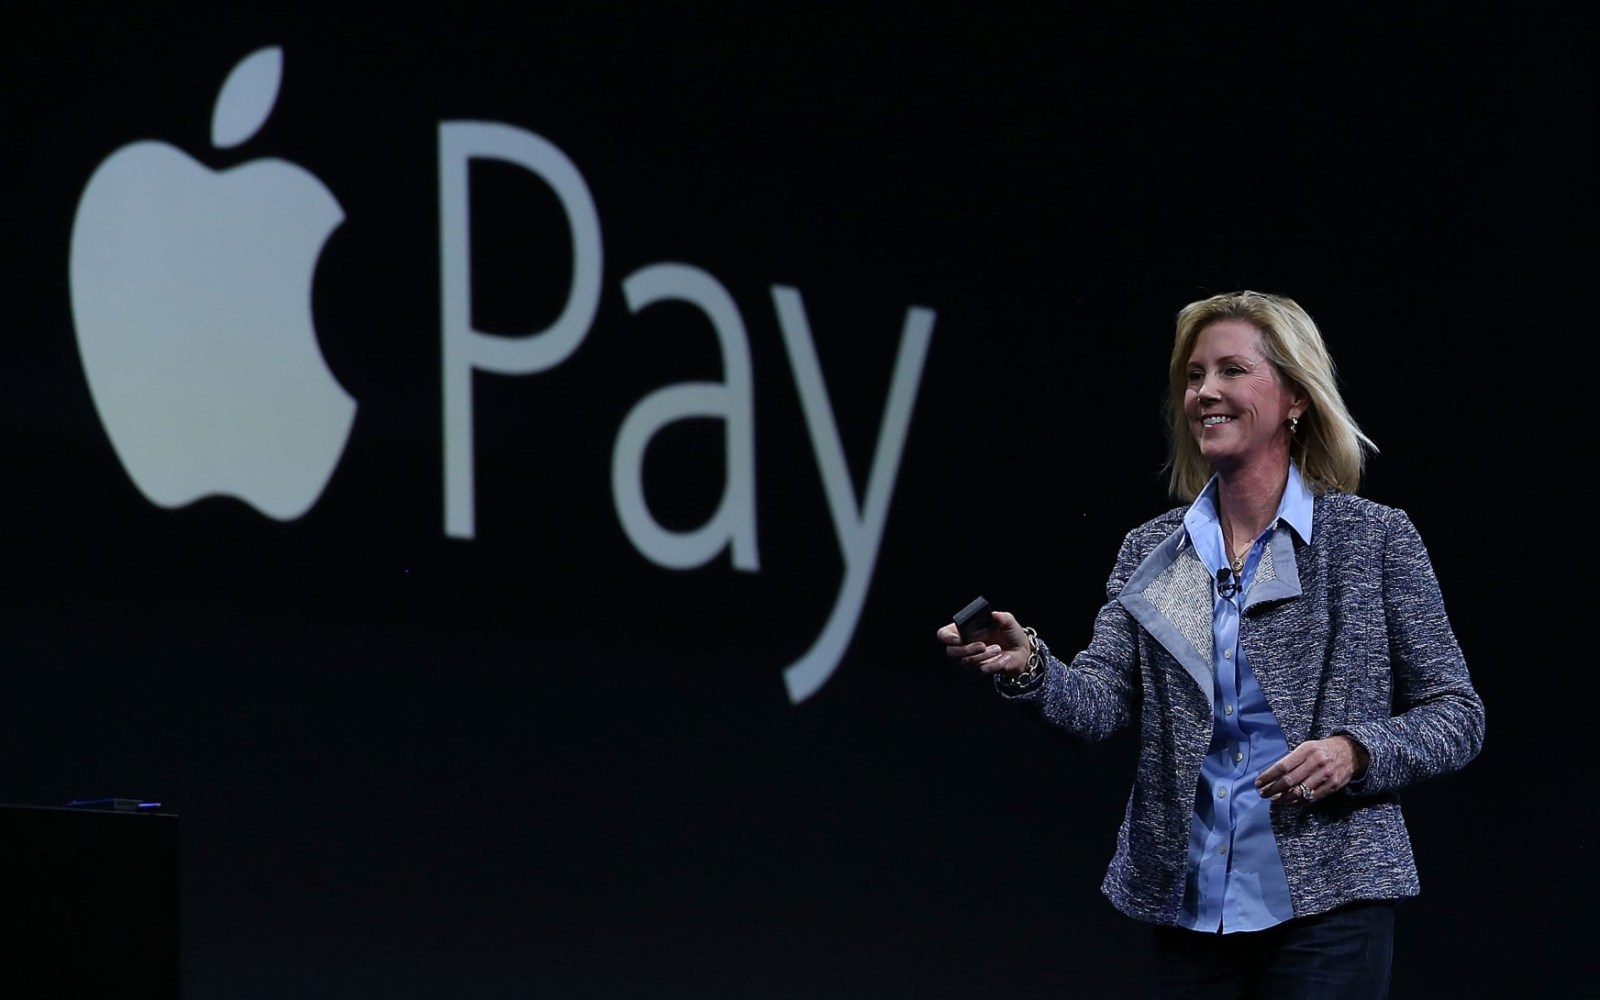 Apple VP Jennifer Bailey says Australian customers use Apple Pay more frequently than any other country, as major banks dispute terms